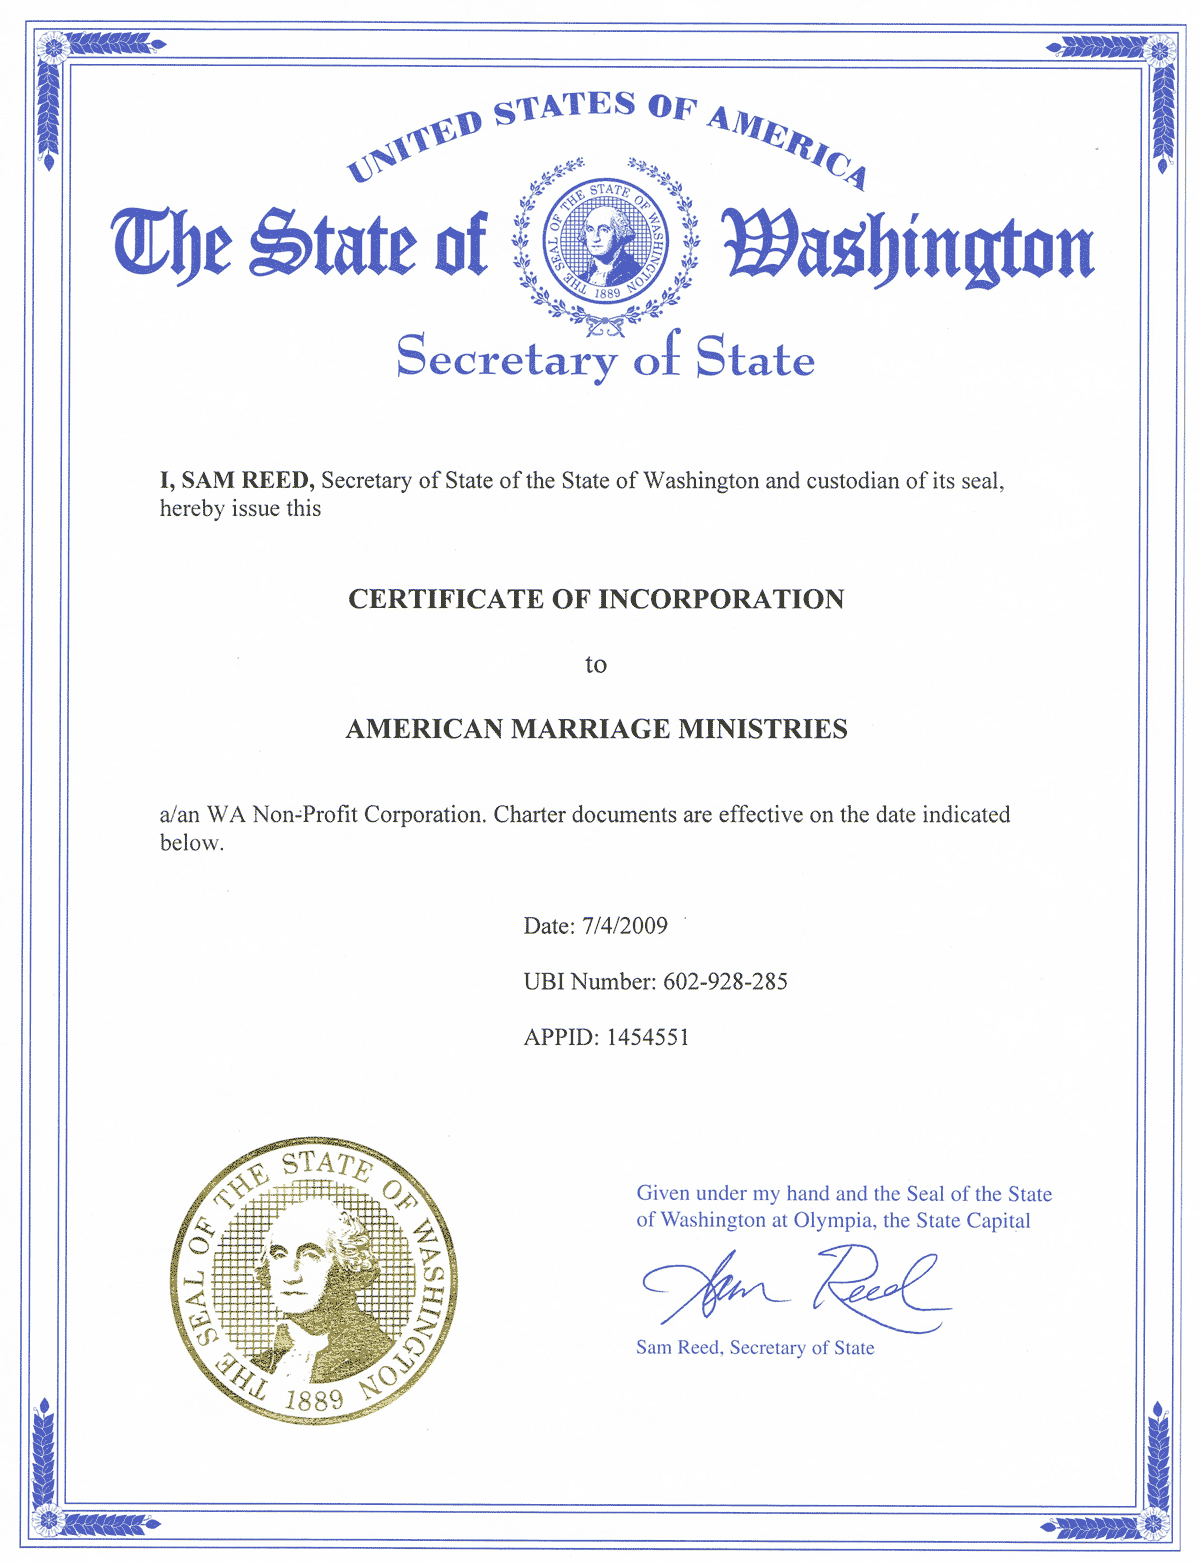 American Marriage Ministries Certificate of Incorporation